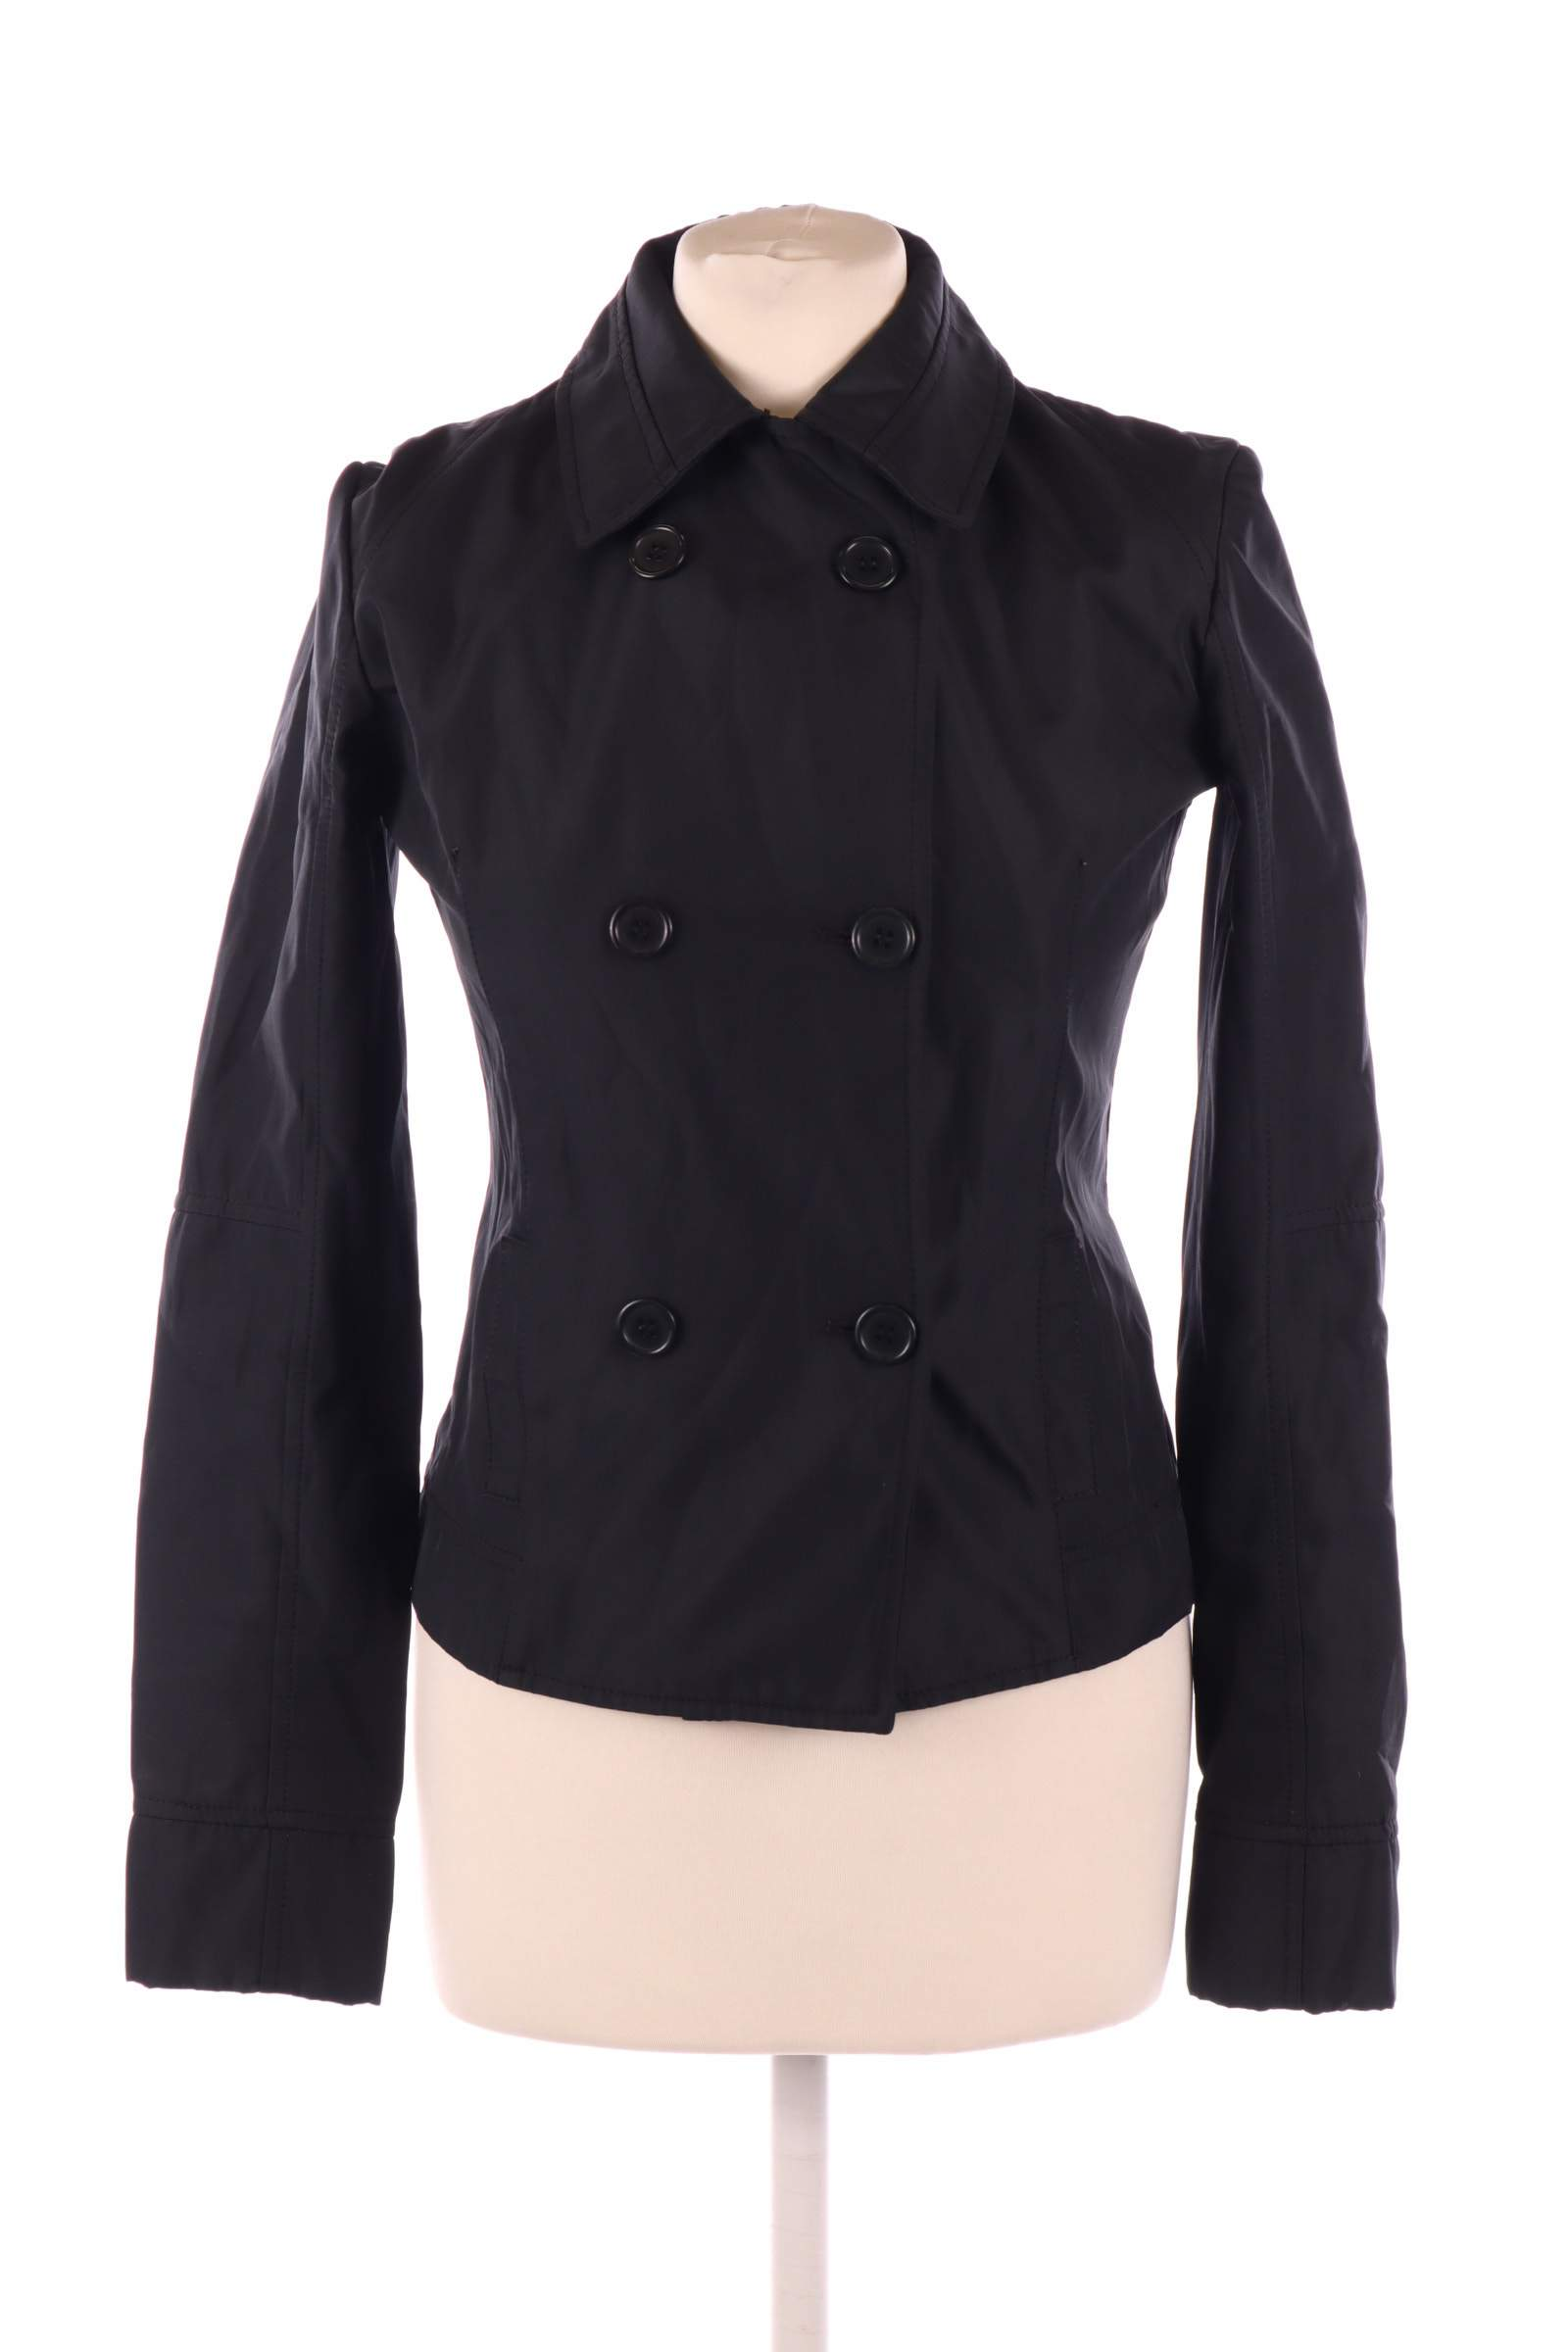 sasch Black Coat - upty.store